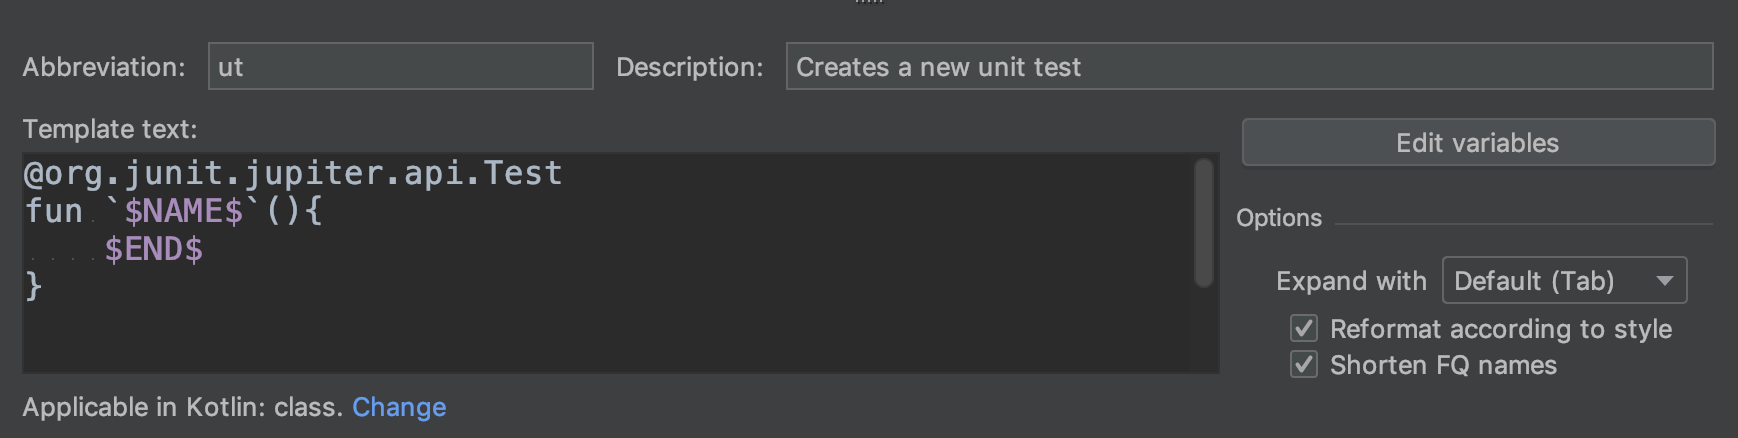 IntelliJ Live Template Ideas for JUnit 5 Tests - Noteworthy